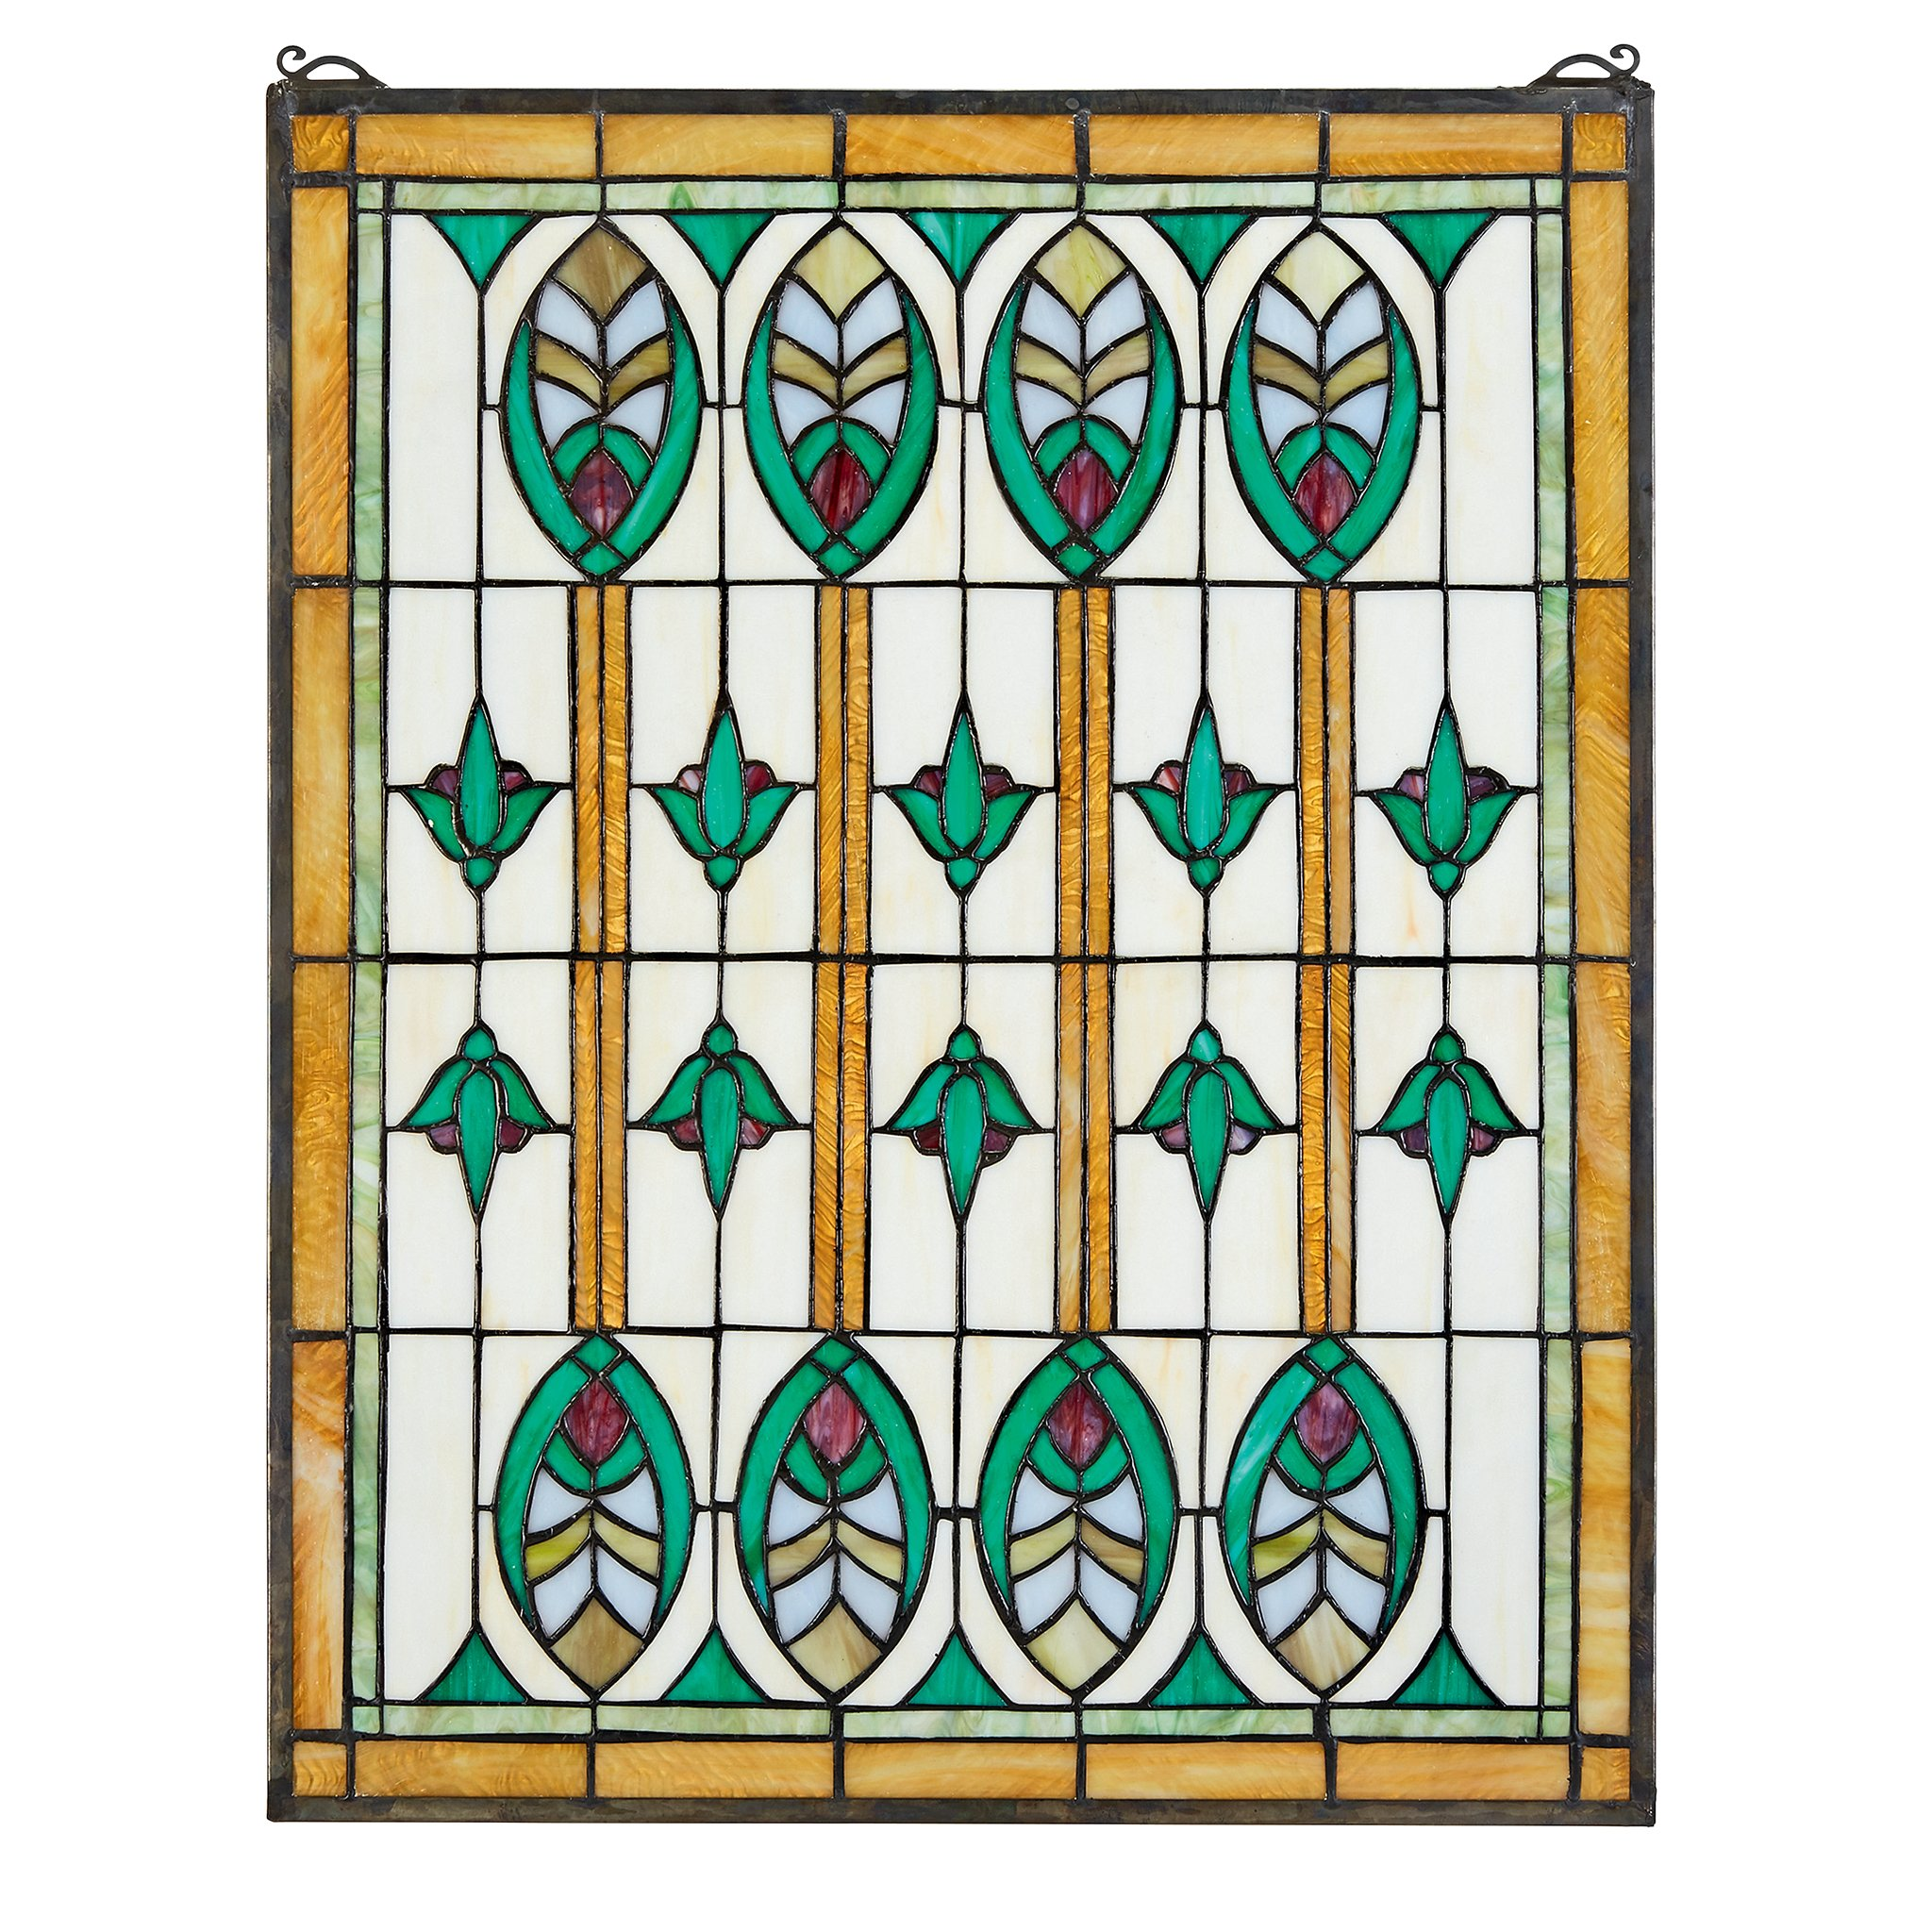 Stained Glass Panel - Elmslie Arts and Crafts Stained Glass Window Hangings - Window Treatments